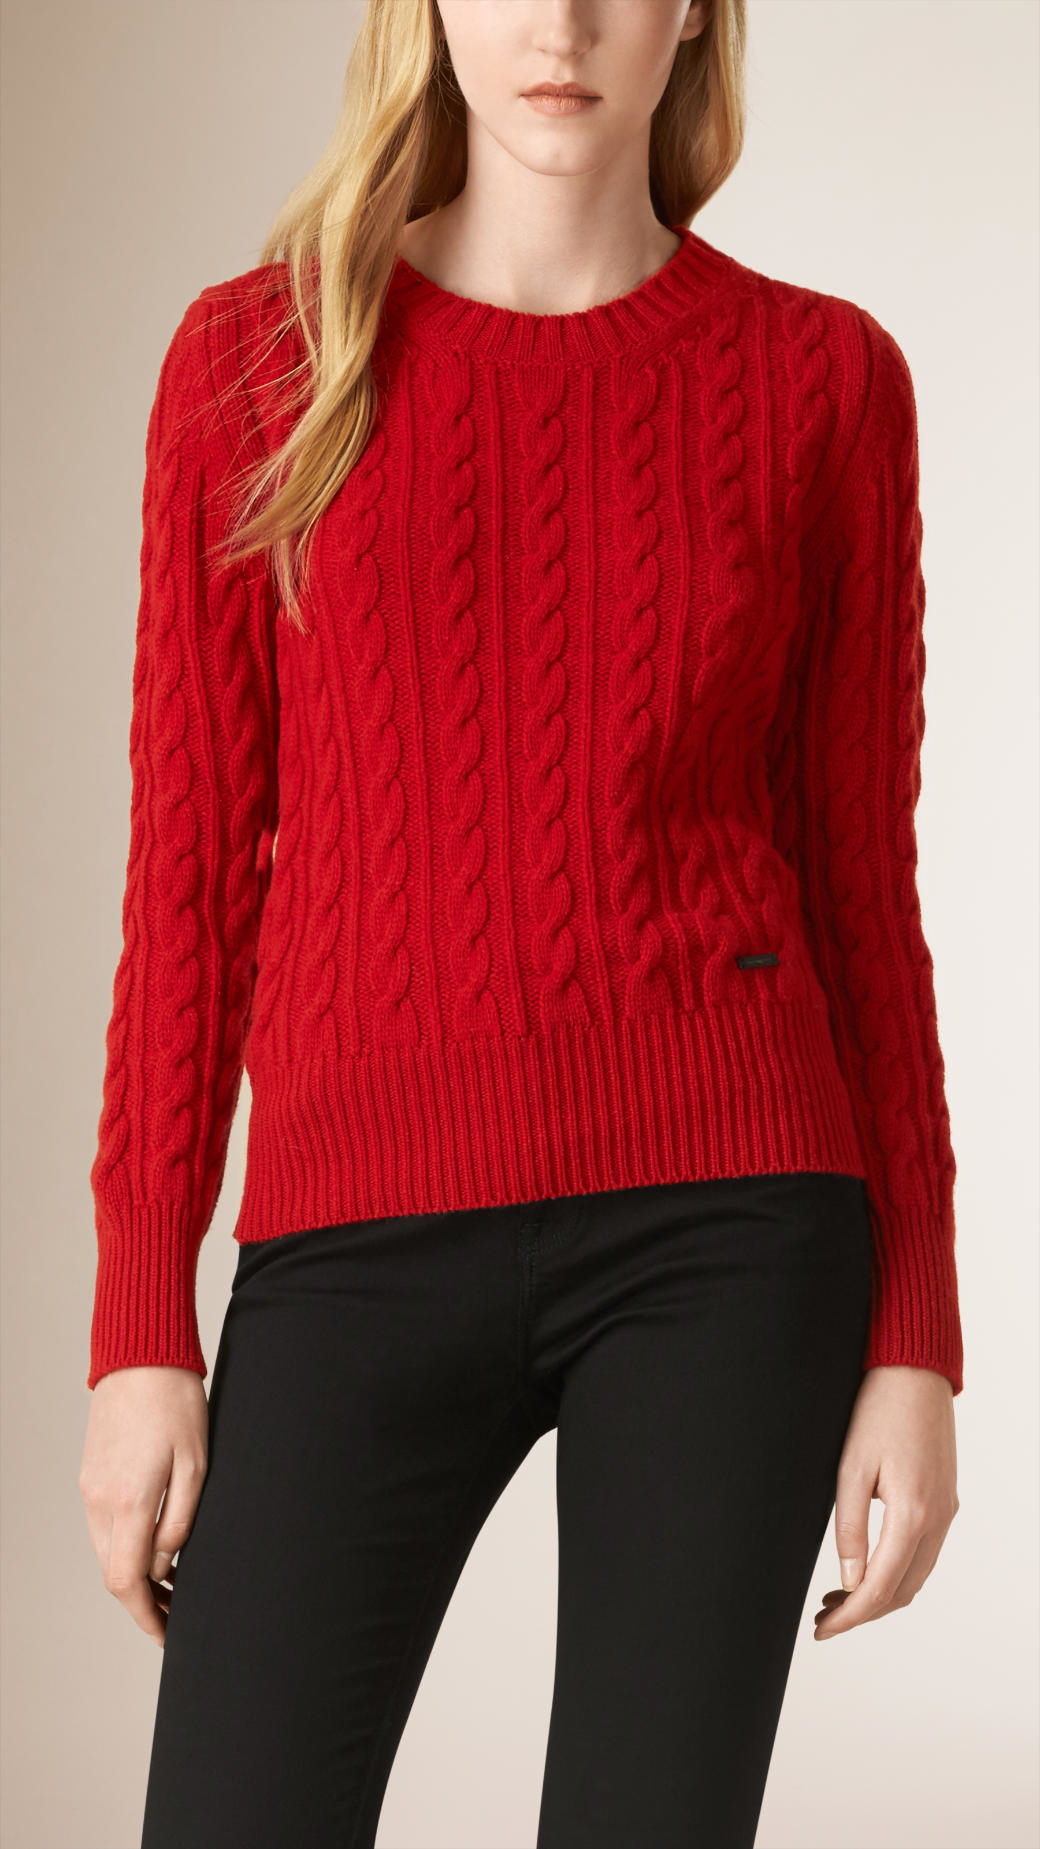 Burberry Cable Knit Wool Cashmere Sweater Parade Red in Red | Lyst